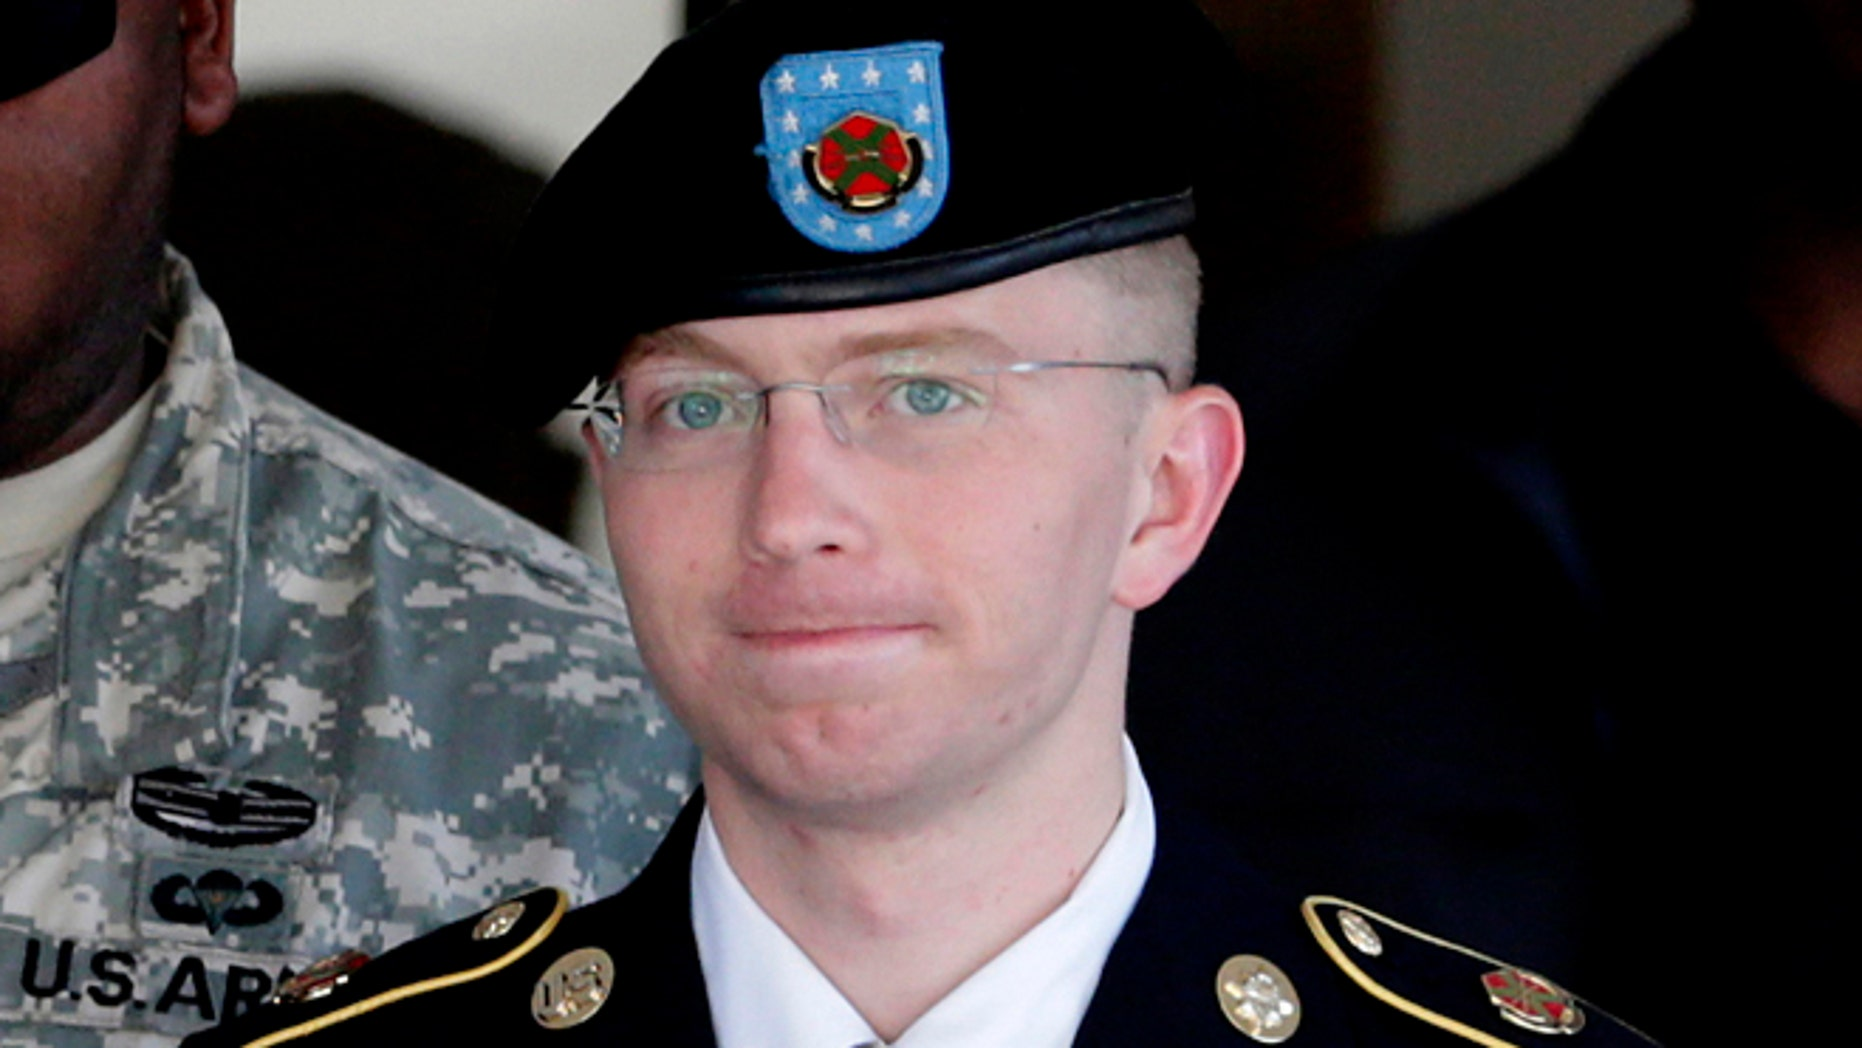 FILE: June 25, 2012: Army Pfc. Bradley Manning, right, is escorted out of a courthouse in Fort Meade, Md.